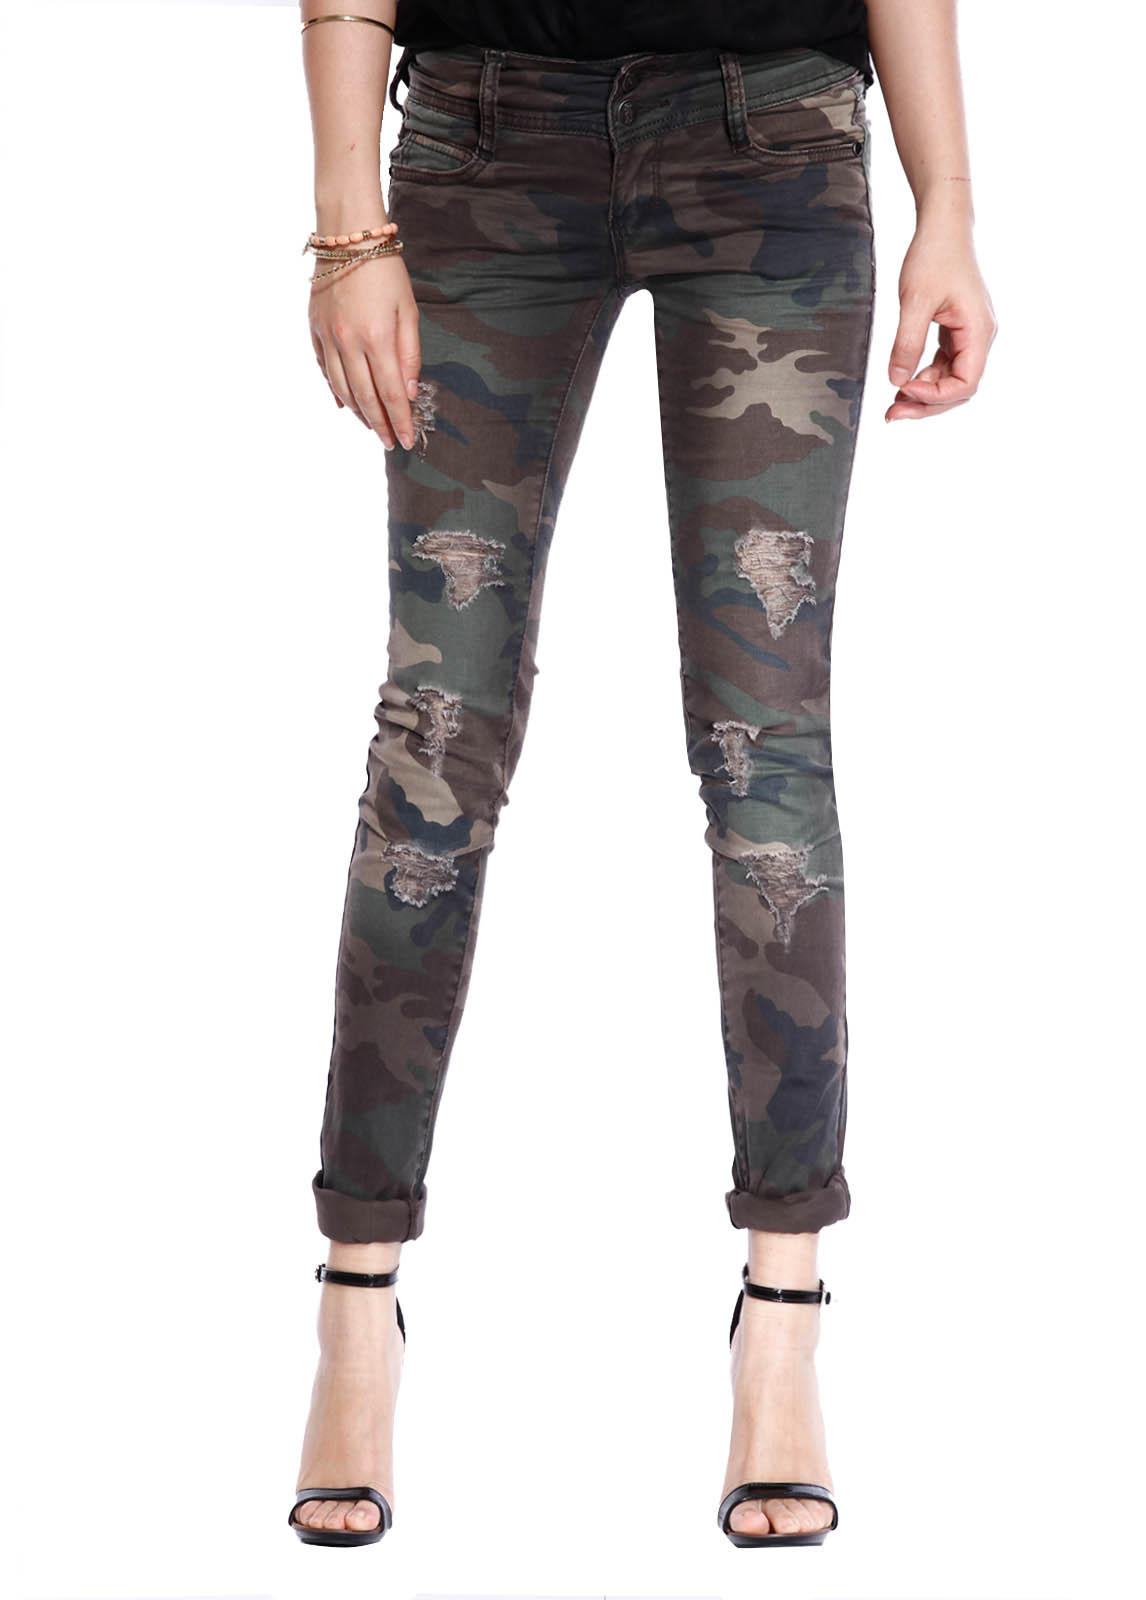 Joe Boxer Juniors' Push-Up Skinny Jeans - Camouflage. Sold by Sears. $ - $ $ - $ Fashion2Love Style 9O S Women s Camouflage High Waist Light Denim Skinny Jeans. Sold by Fashion2love. $ $ Bongo Juniors' Ruched Jogger Pants - Camouflage. Sold by Sears. $ $